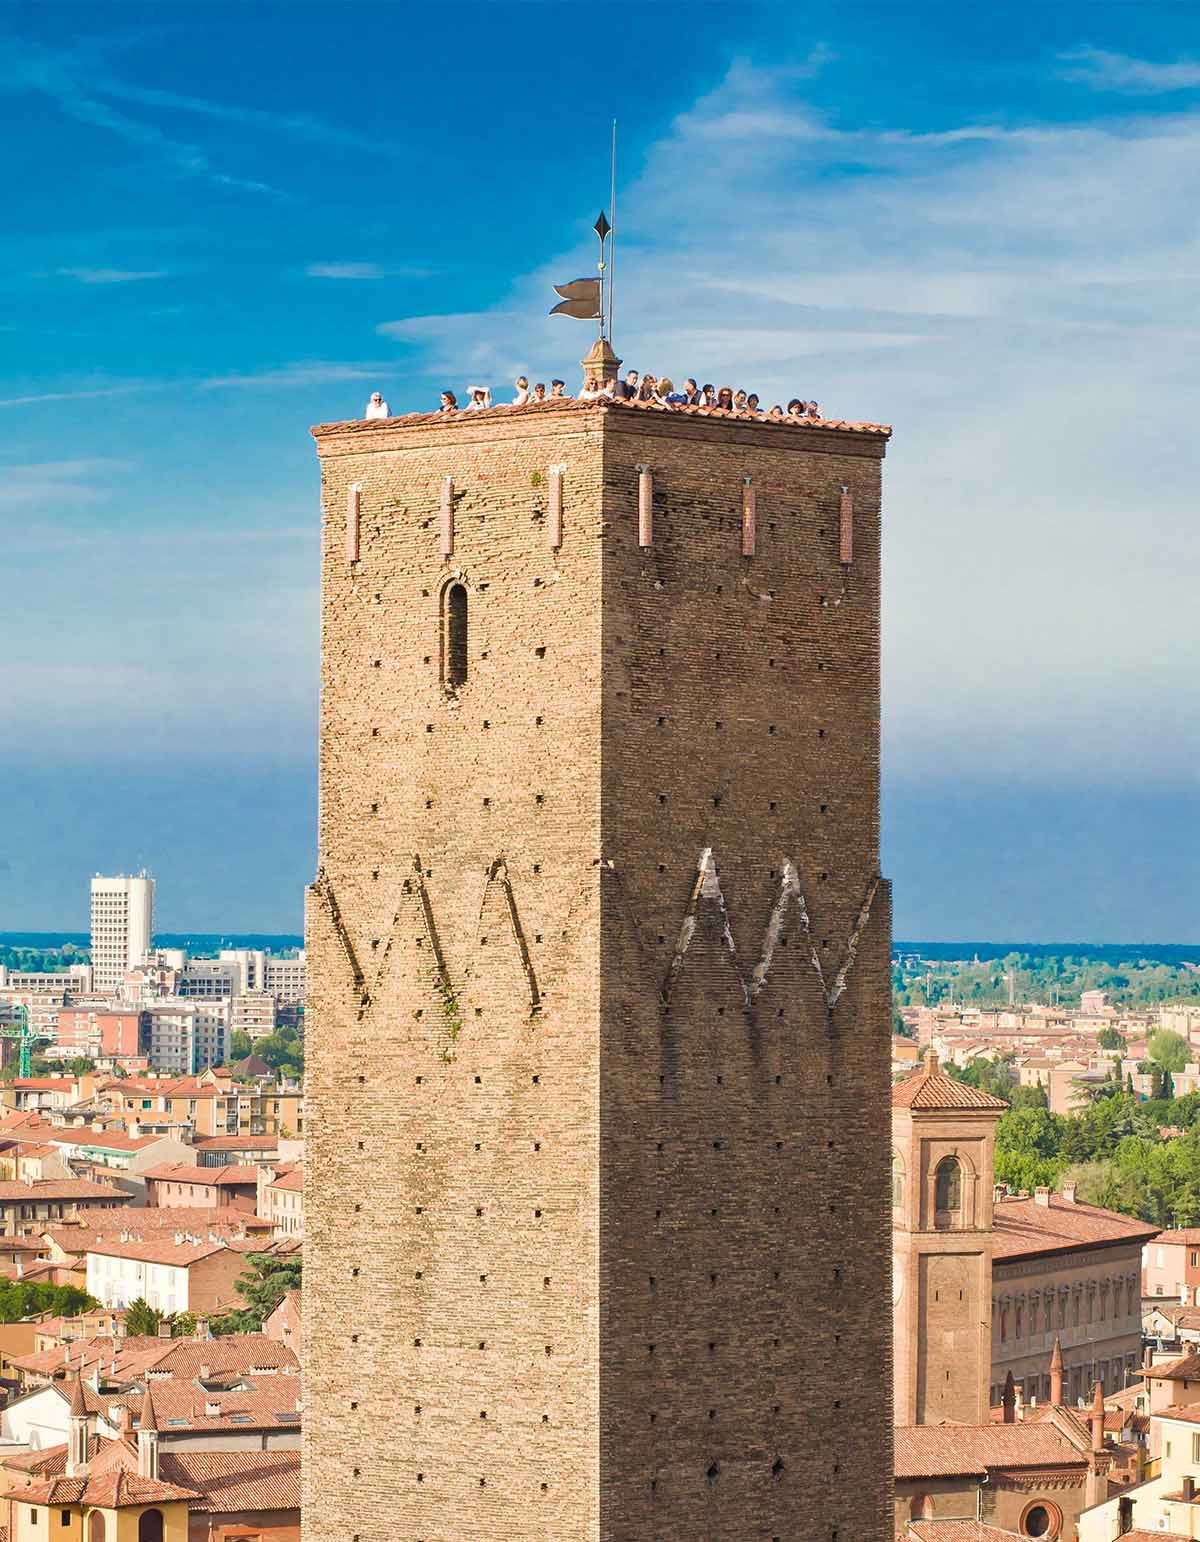 Prendiparte Tower